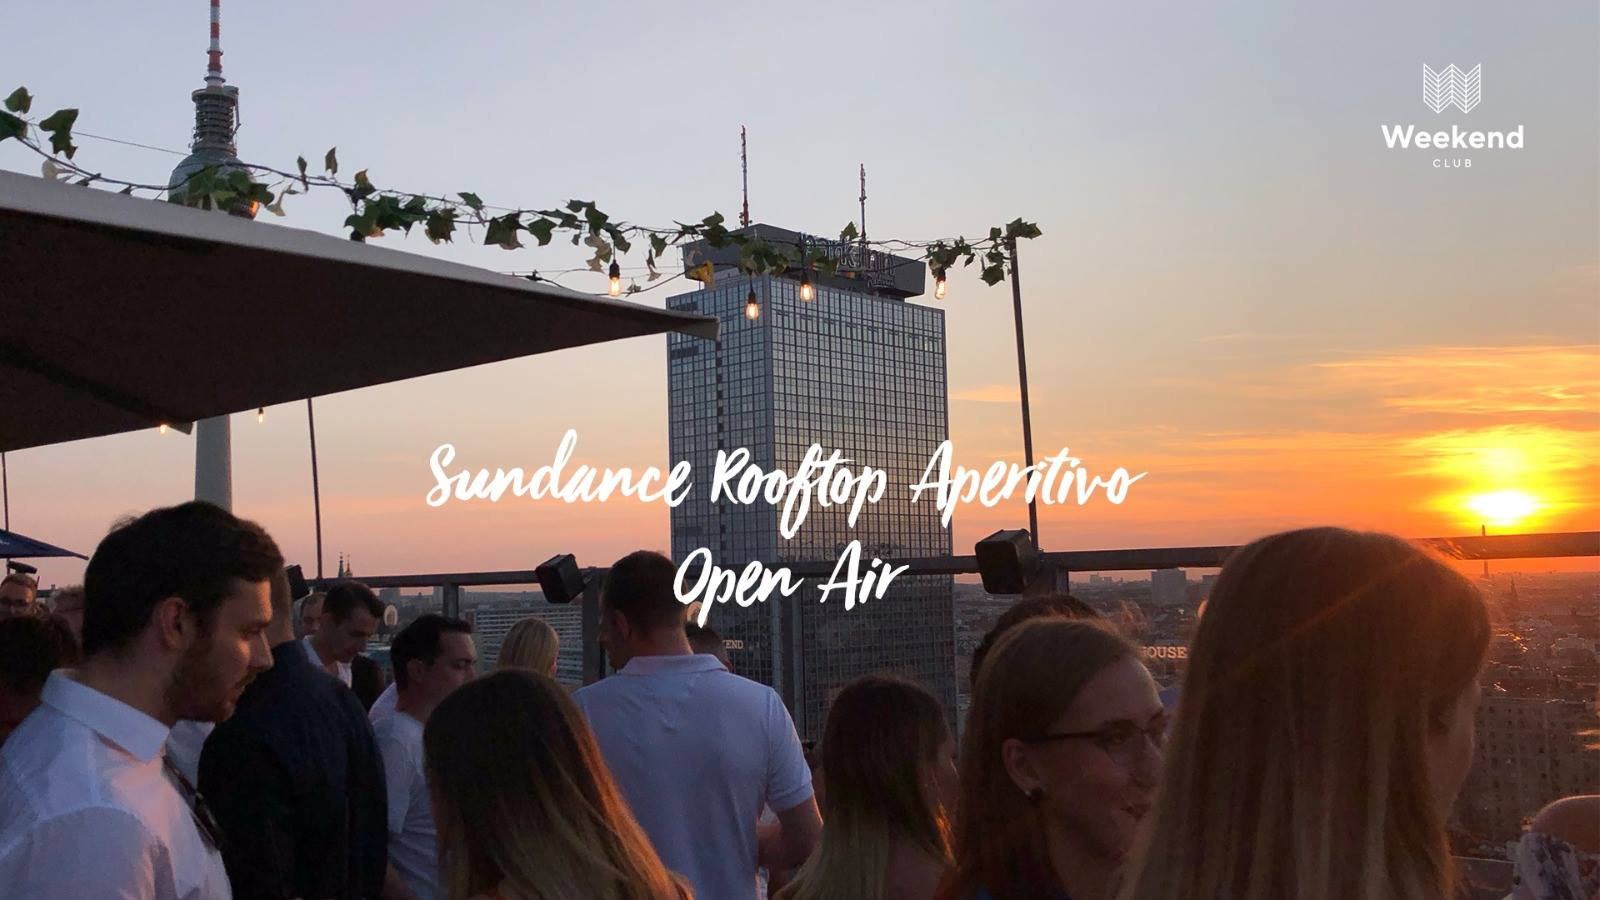 Sundance Rooftop Aperitivo  Enjoy the view, the cocktails and good vibes on our rooftop with the perfect view over the city.